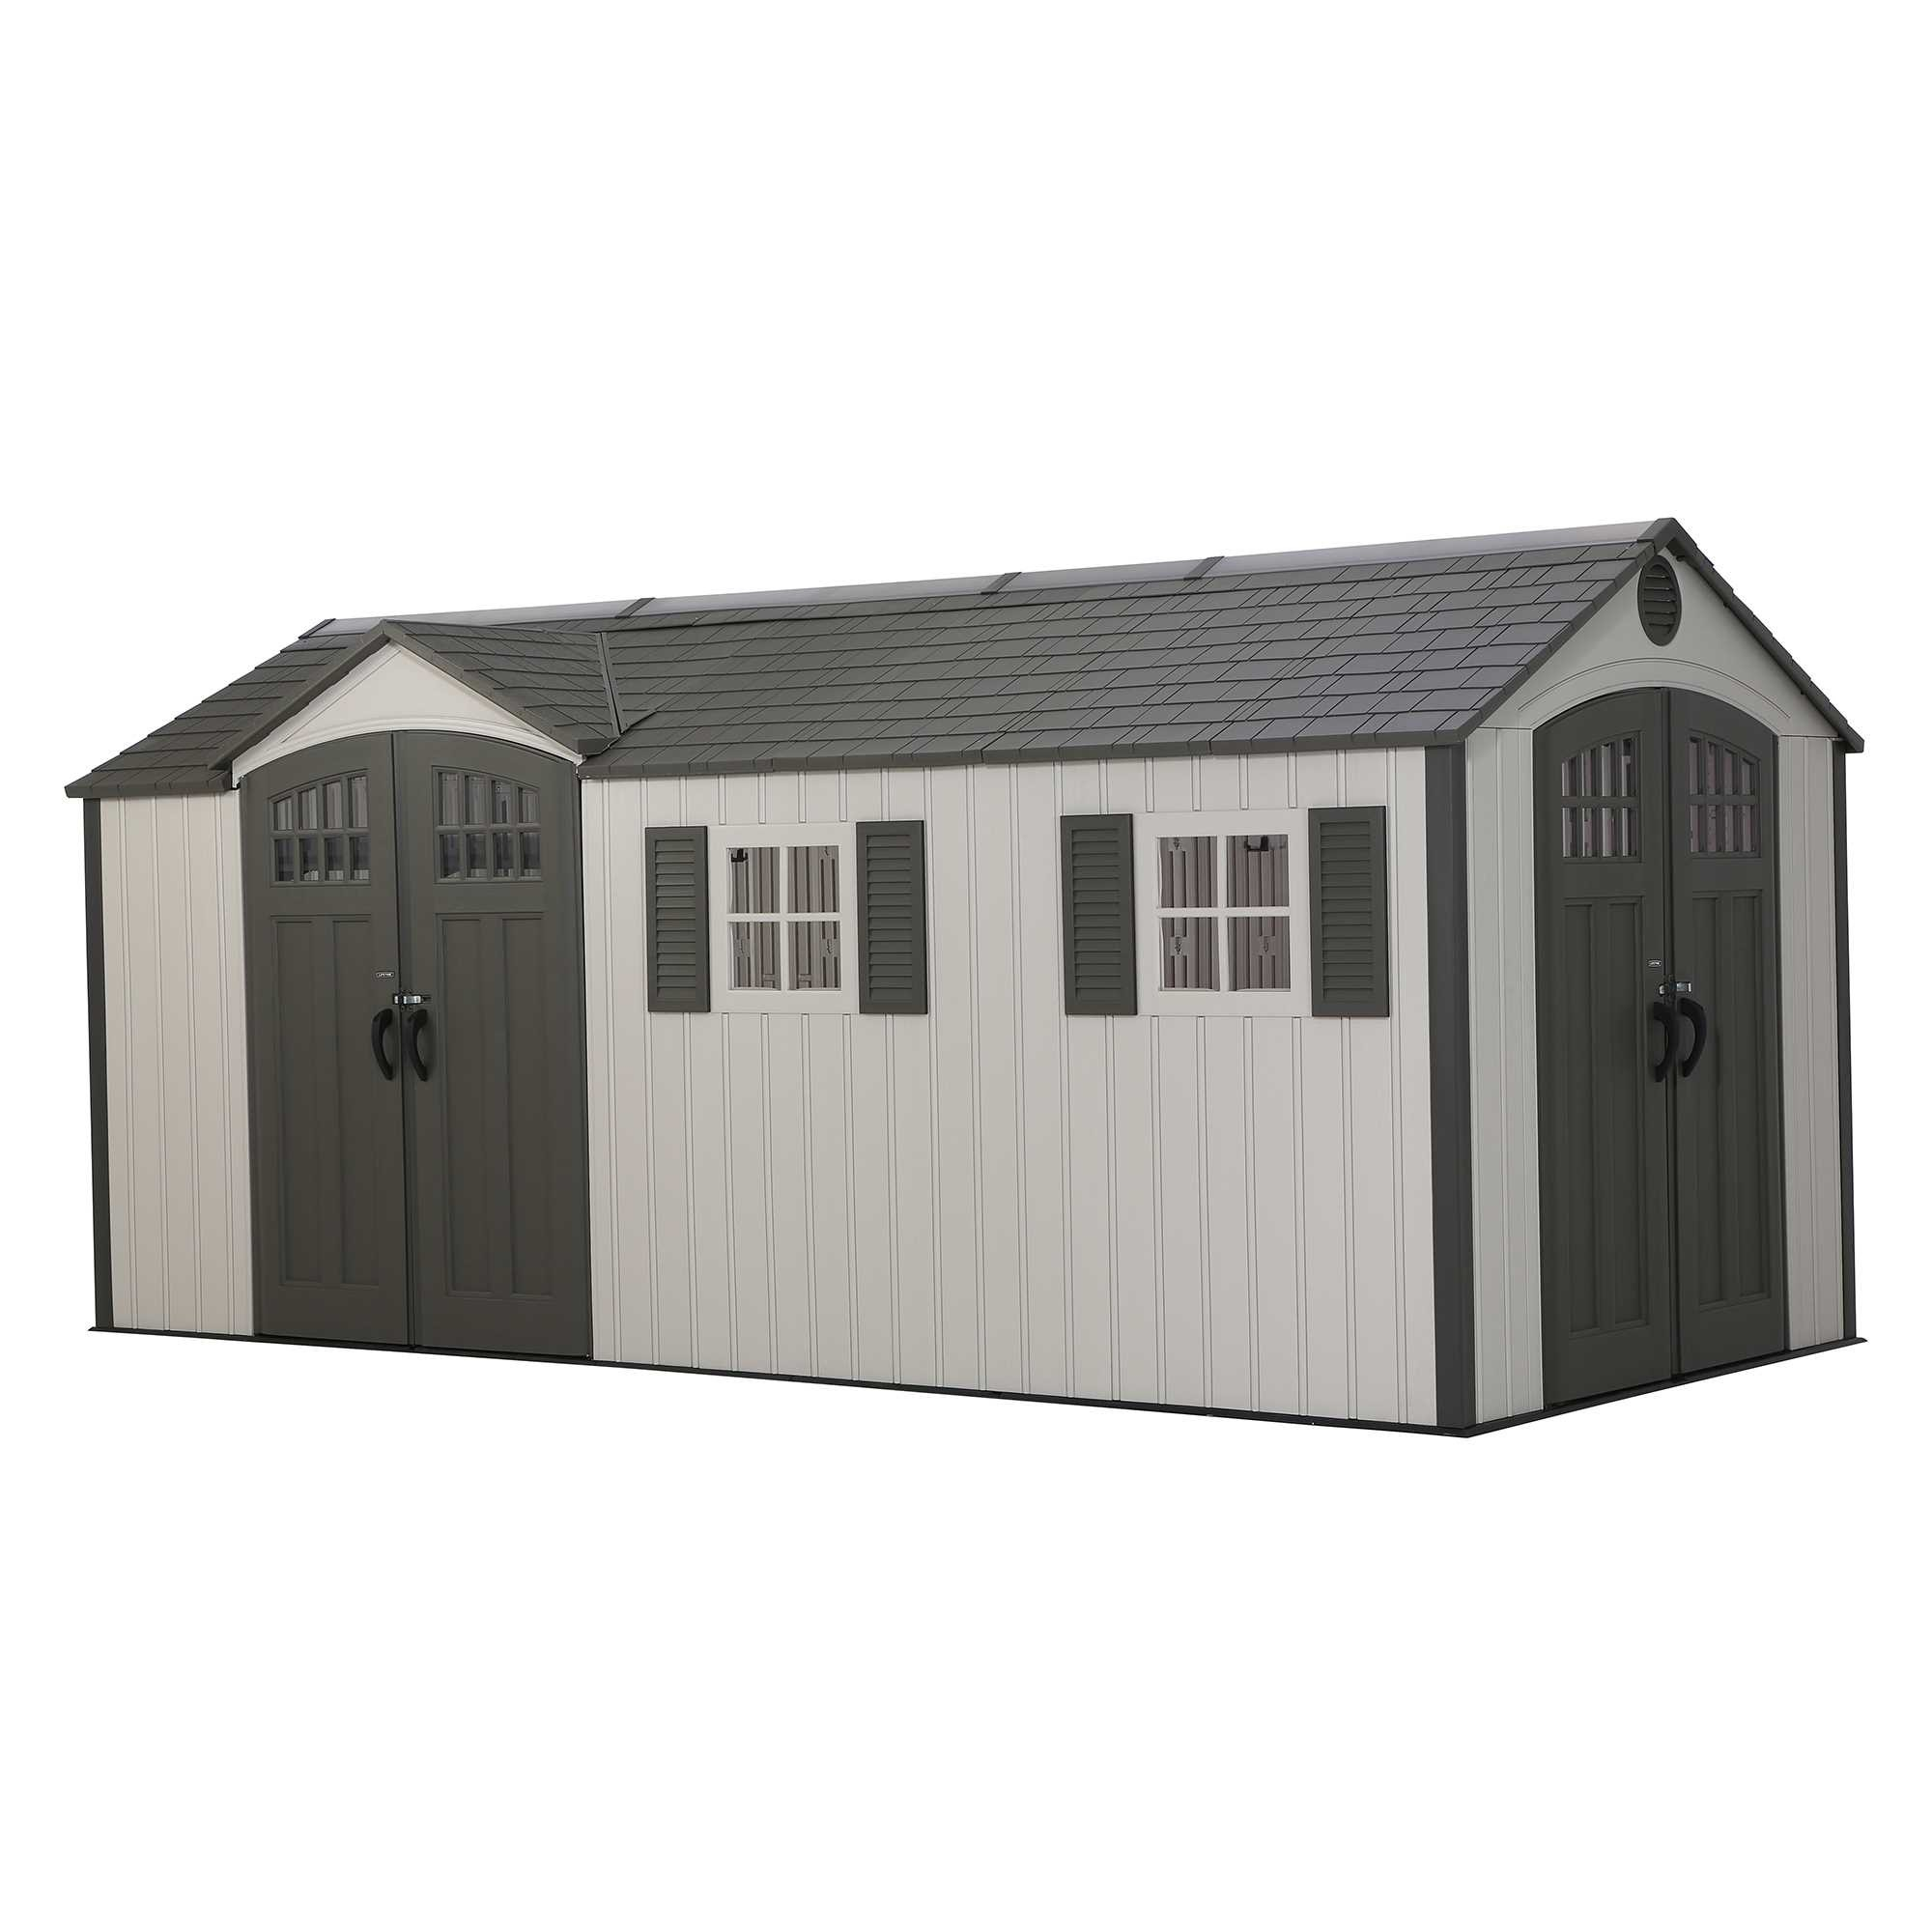 Lifetime 17.5x8 Dual Entrance Plastic Shed - New Edition (COMING SOON)